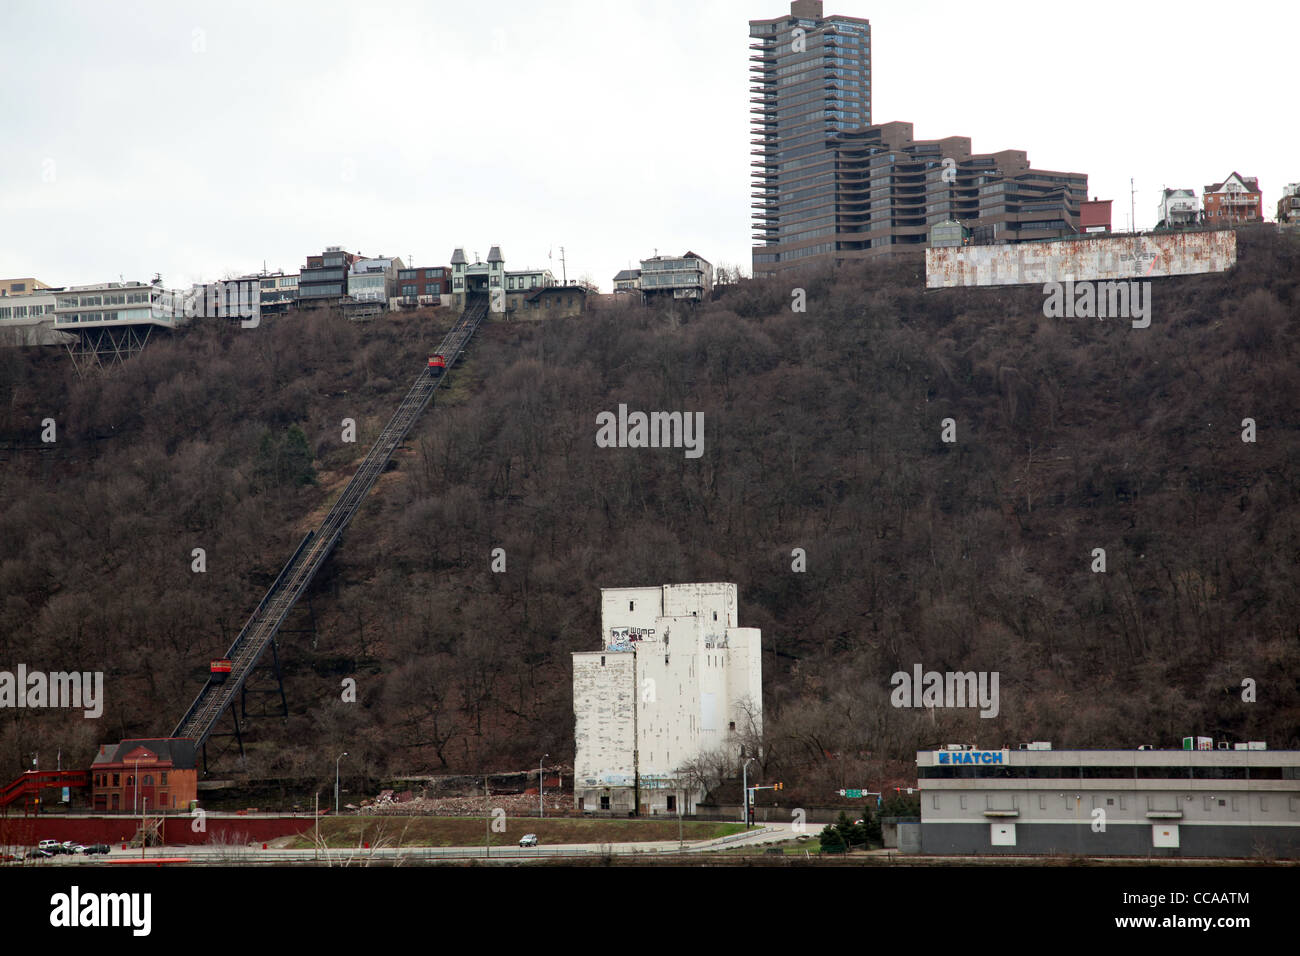 Duquesne Incline, Pitttsburgh, PA, USA - Stock Image